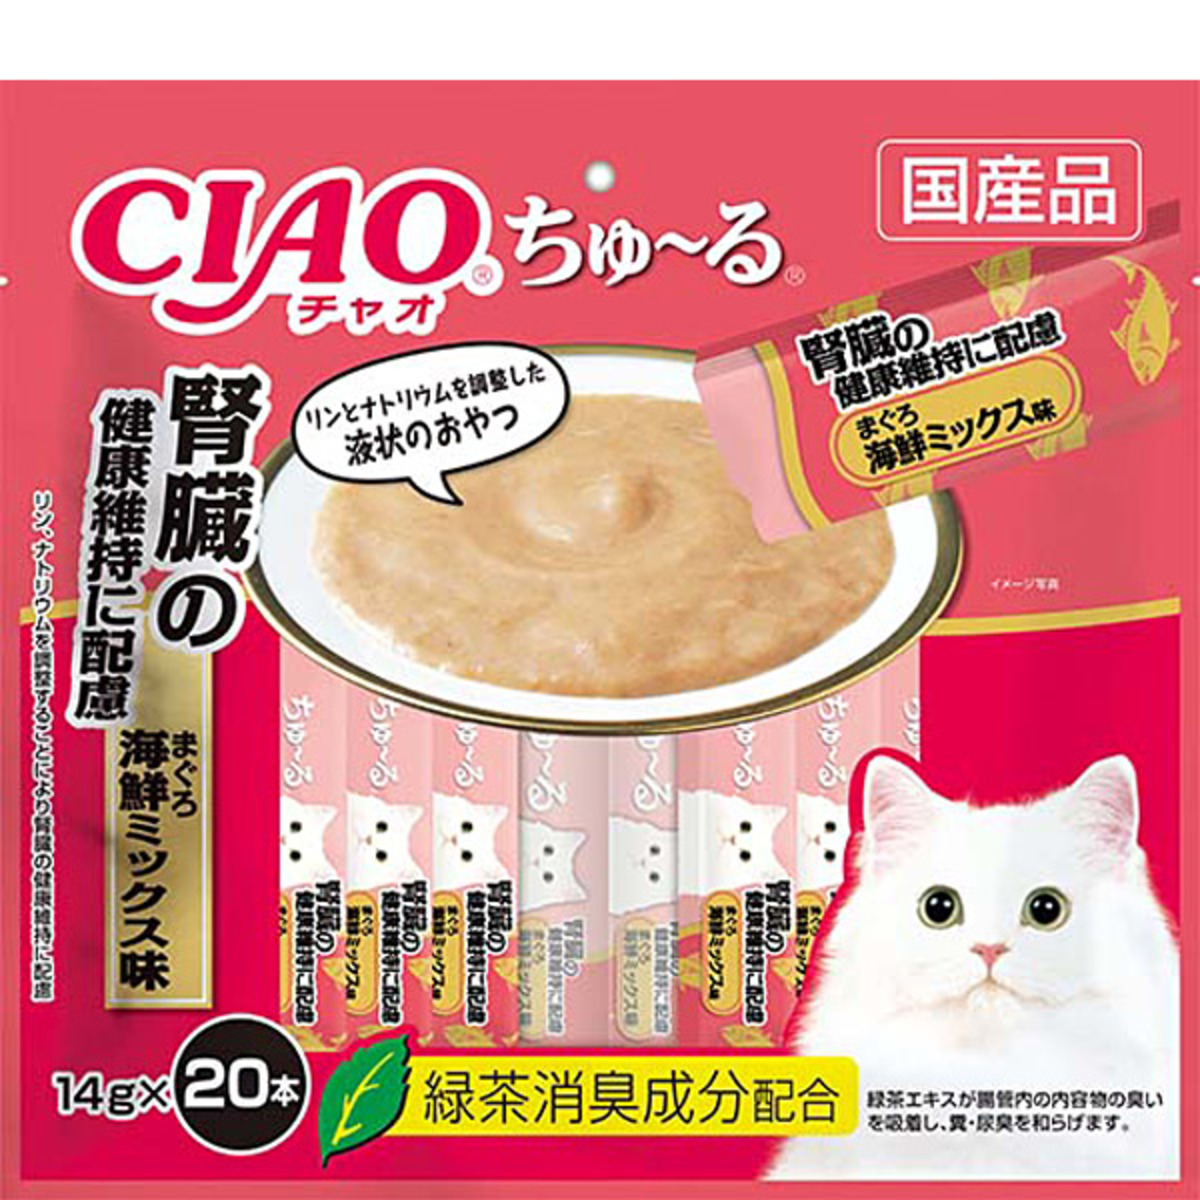 Tuna and Seafood mixed Cream Soup 14g x 20 (Kidney Care) [Parallel Import Product]